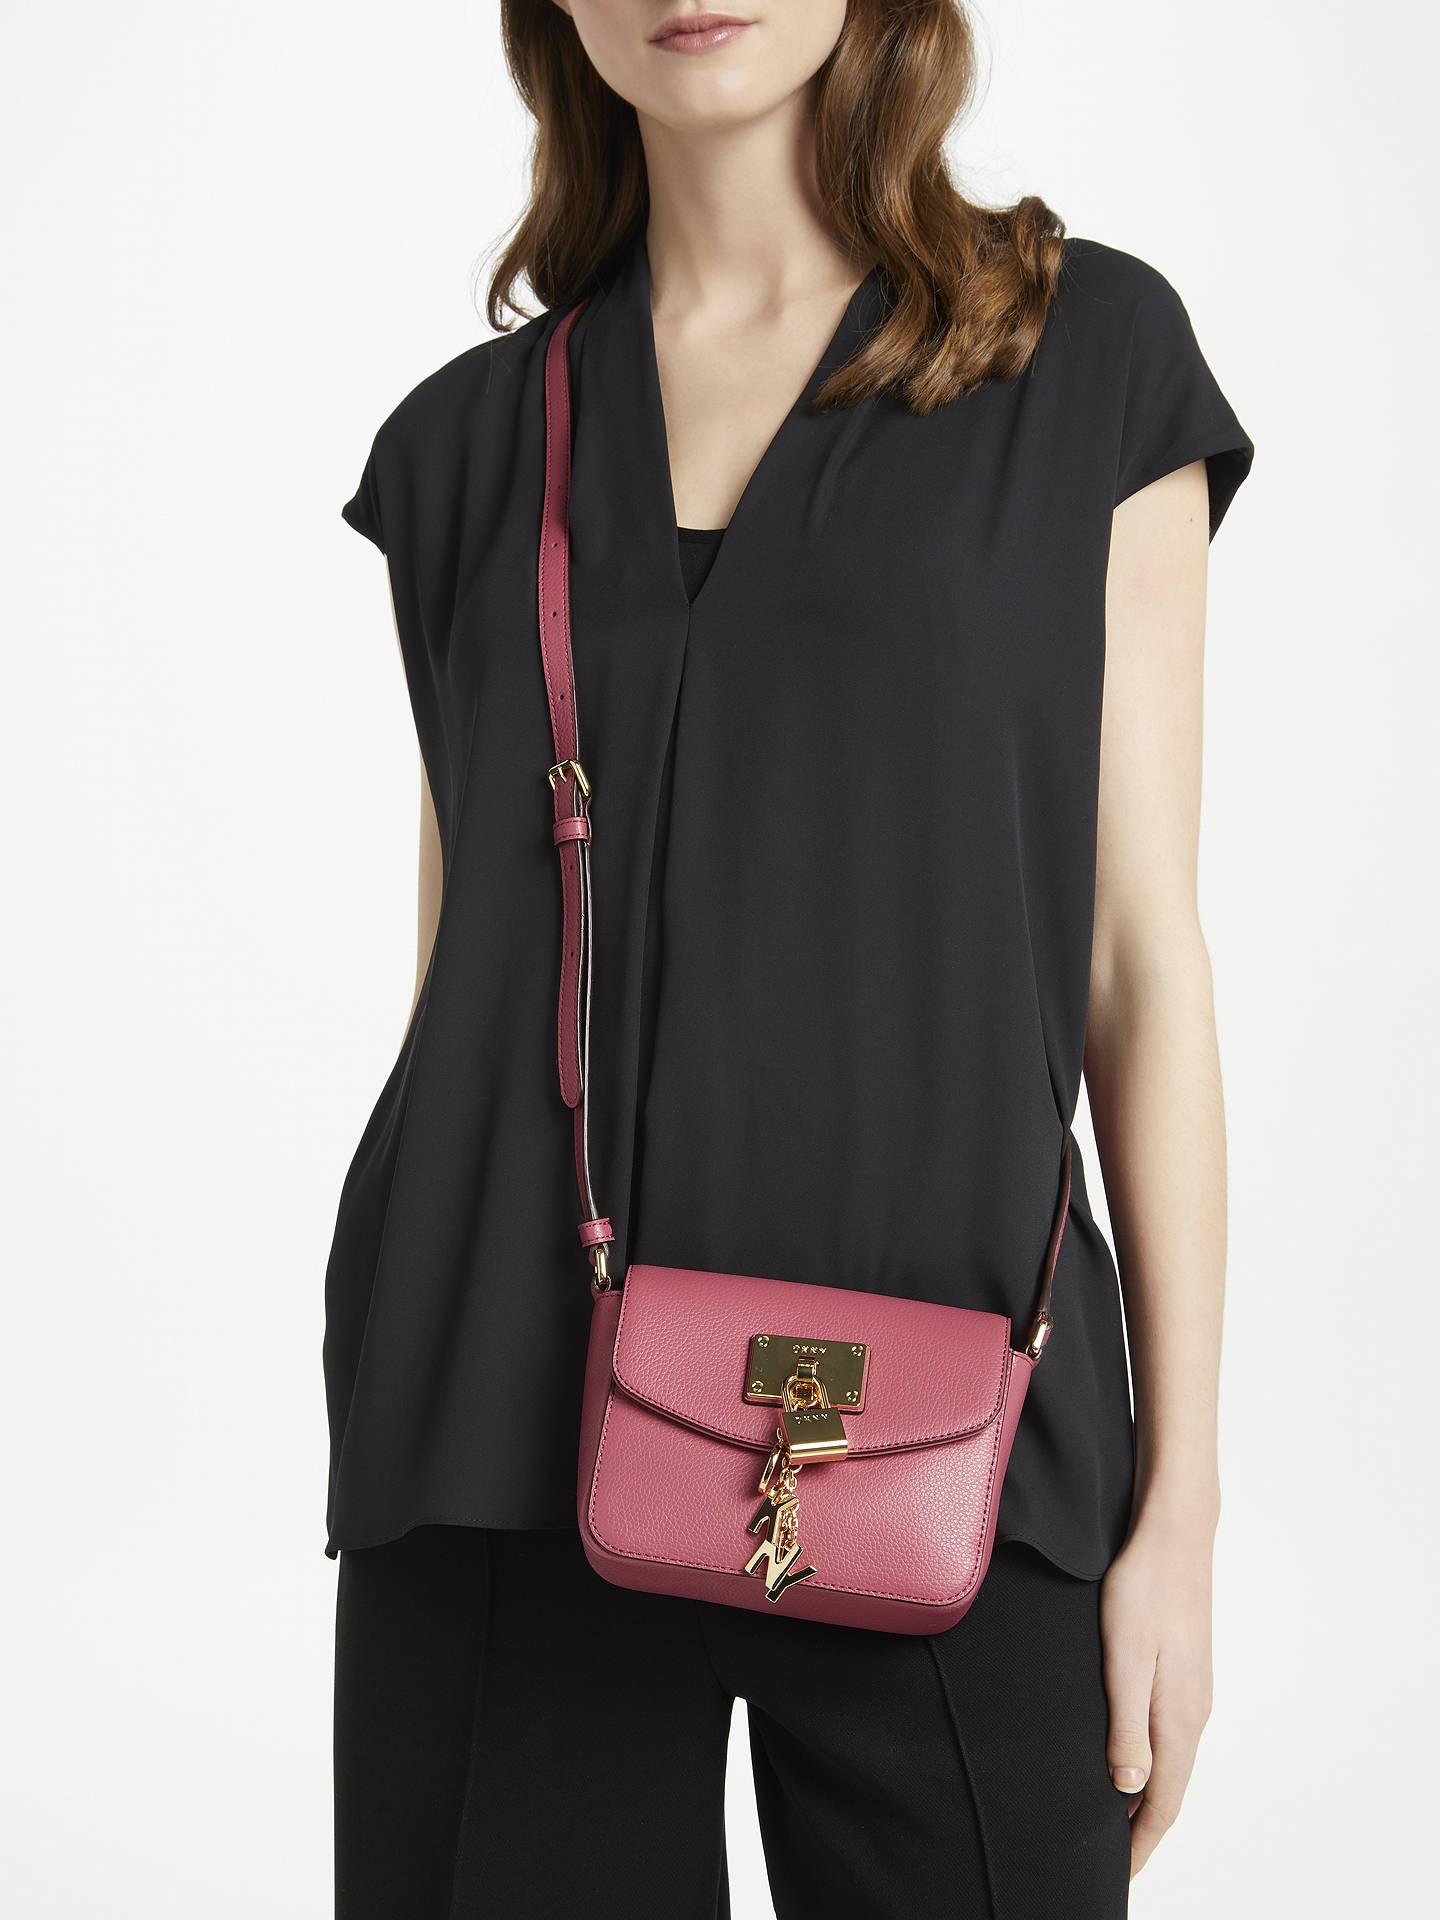 0c1faa471 ... Buy DKNY Elissa Charm Detail Small Leather Cross Body Bag, Hot Pink  Online at johnlewis